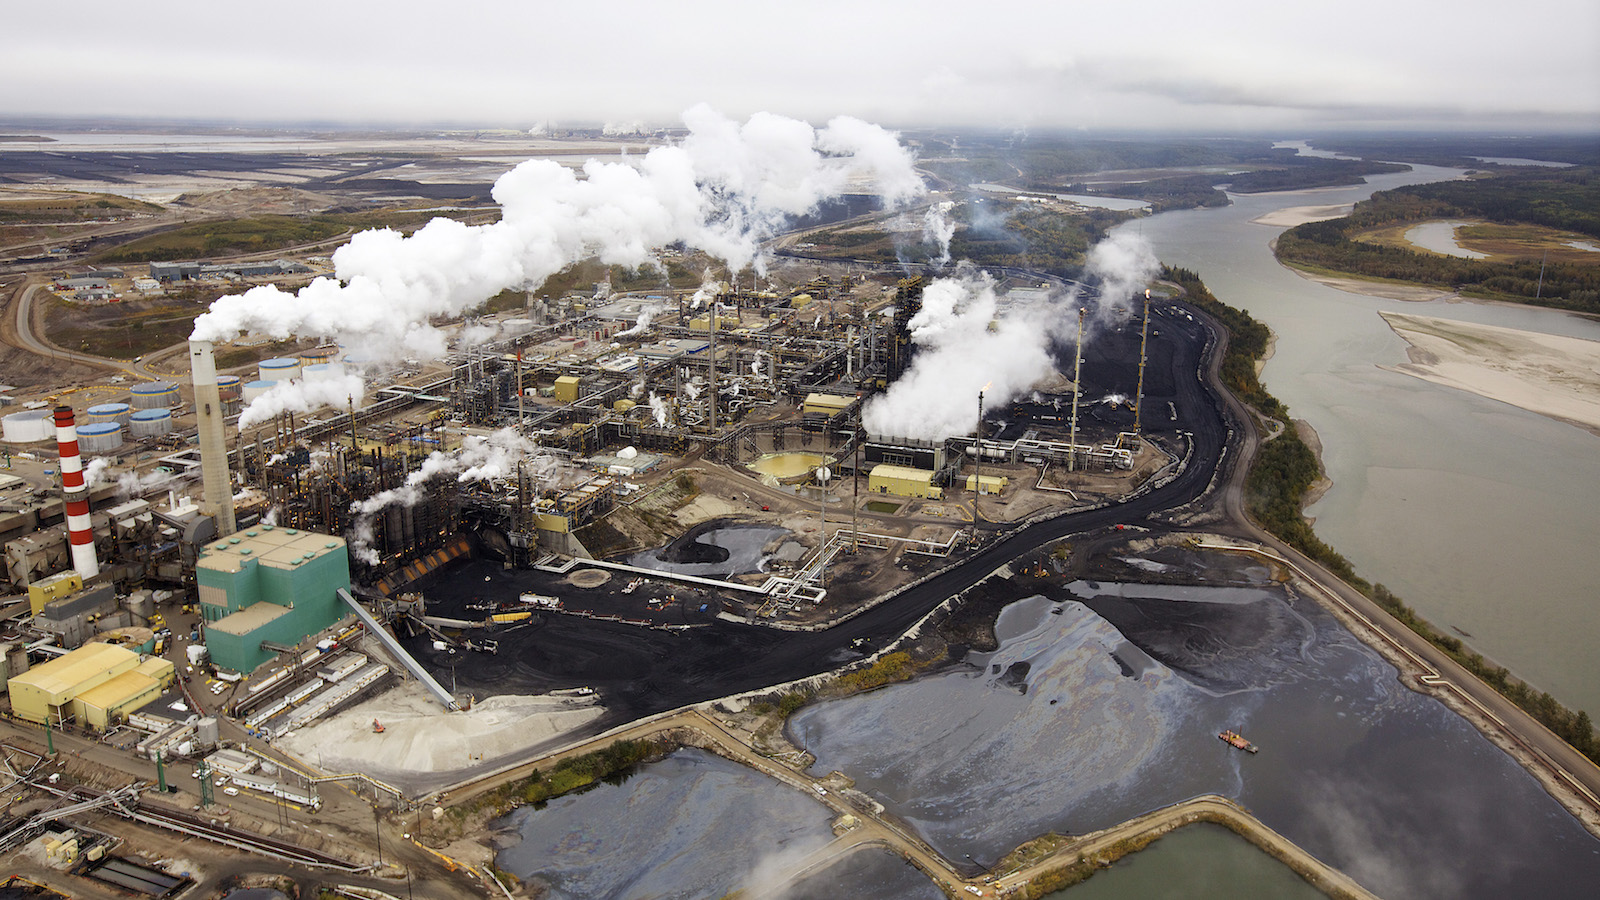 albertas oil sands The alberta tar sands are currently producing around two million barrels of oil per day, with plans to increase that to nearly four million barrels per day by 2022.